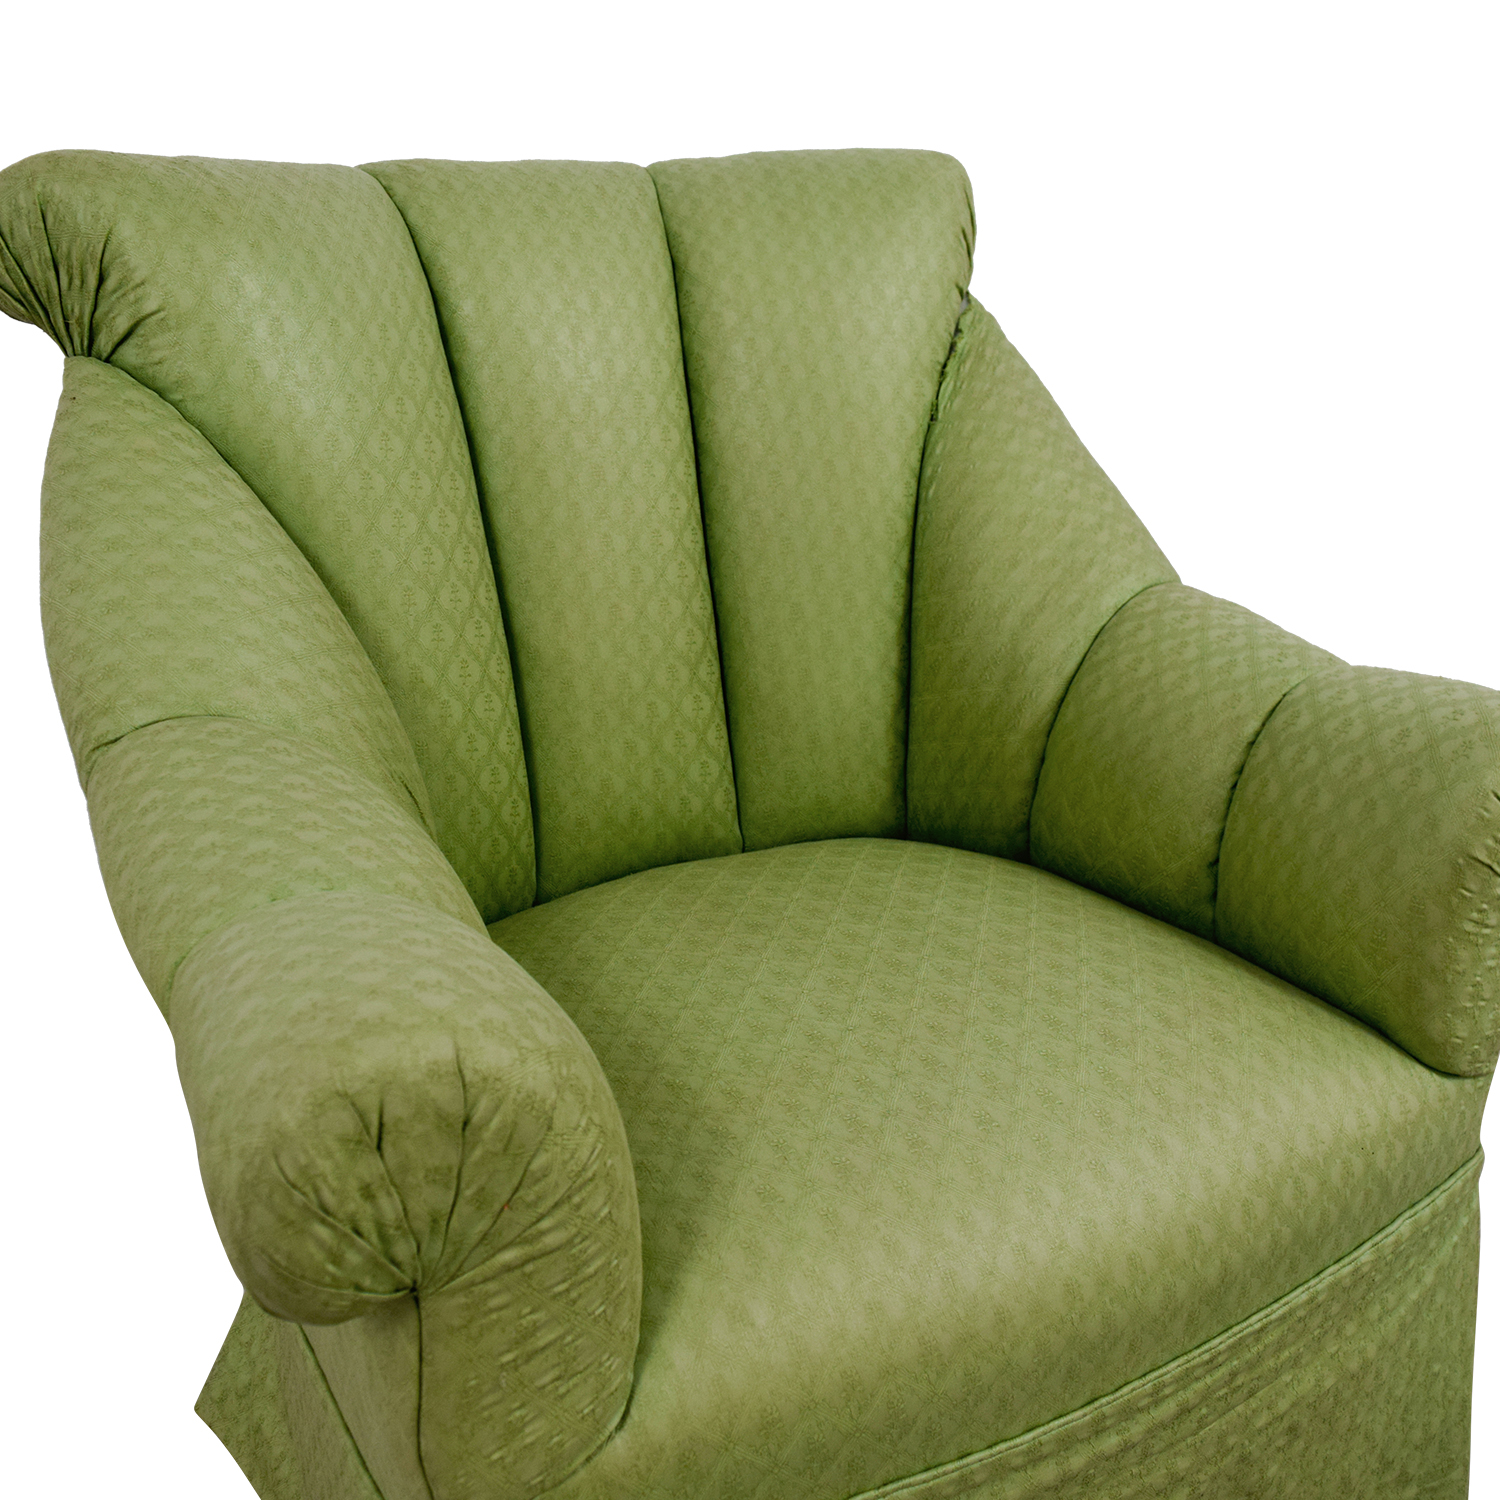 shop Furniture Masters Green Skirted Armchair Furniture Masters Chairs